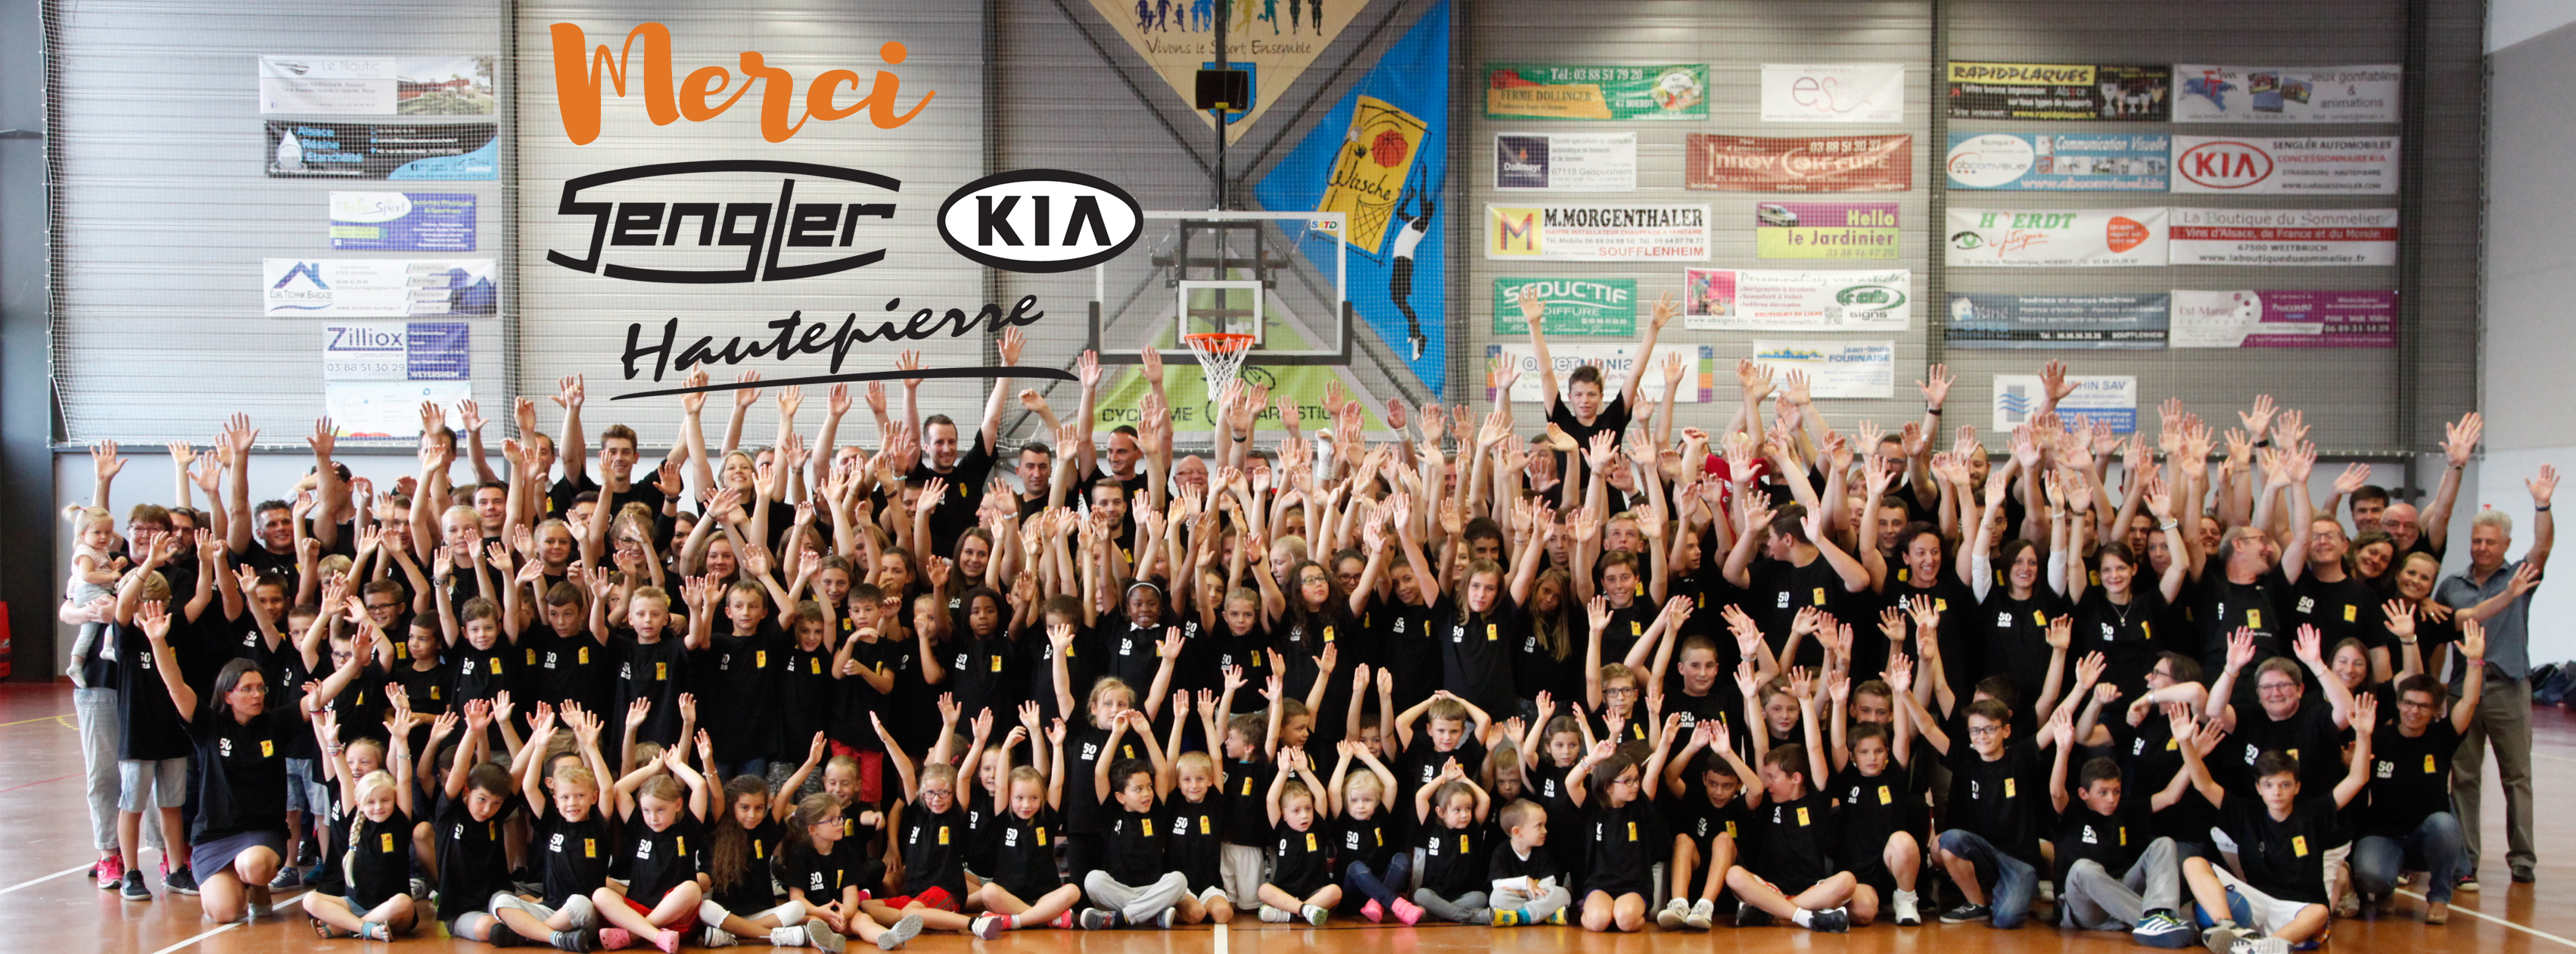 Weyersheim Basket-Ball